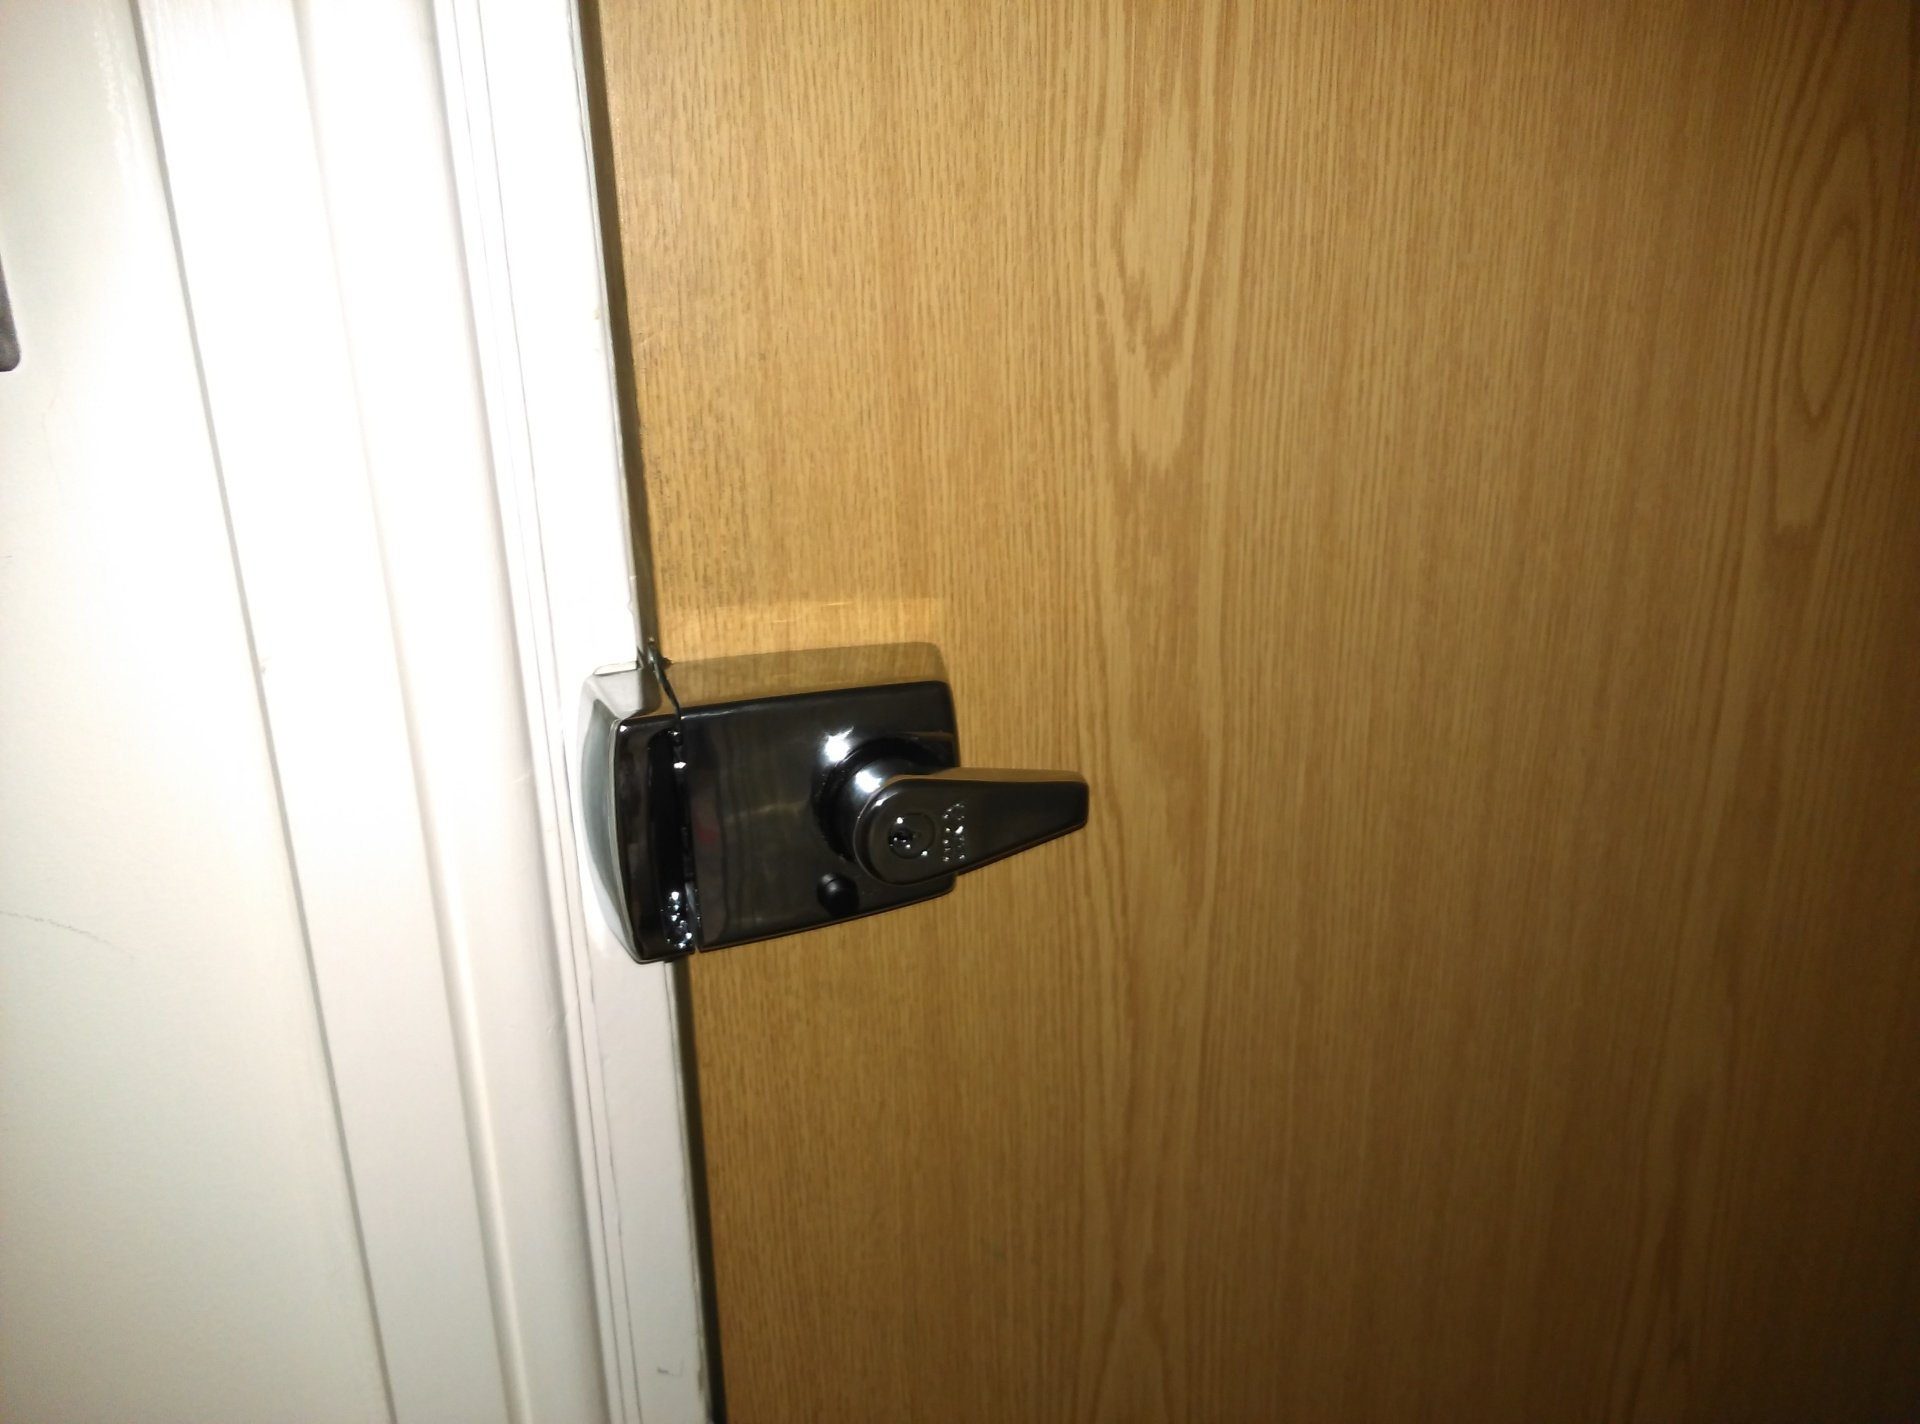 Fire Safety And Locks